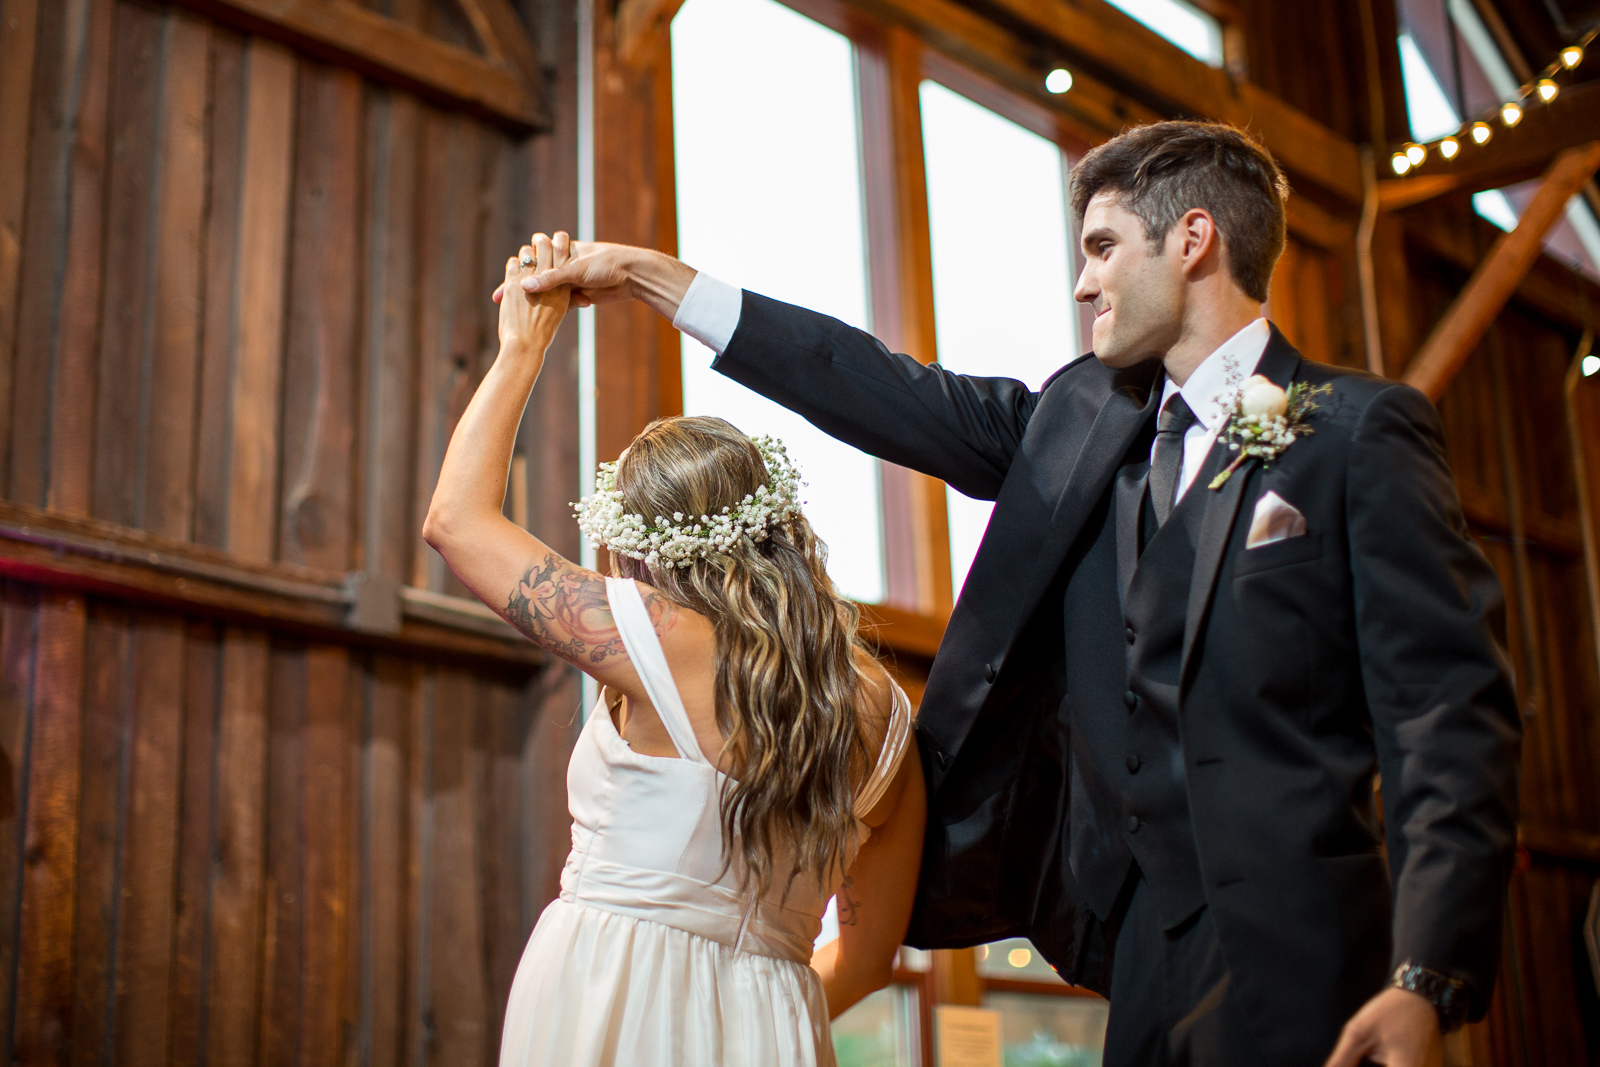 Four_Wings_Photography_Wedding_Red_Barn_at_Hampshire_College-37.jpg